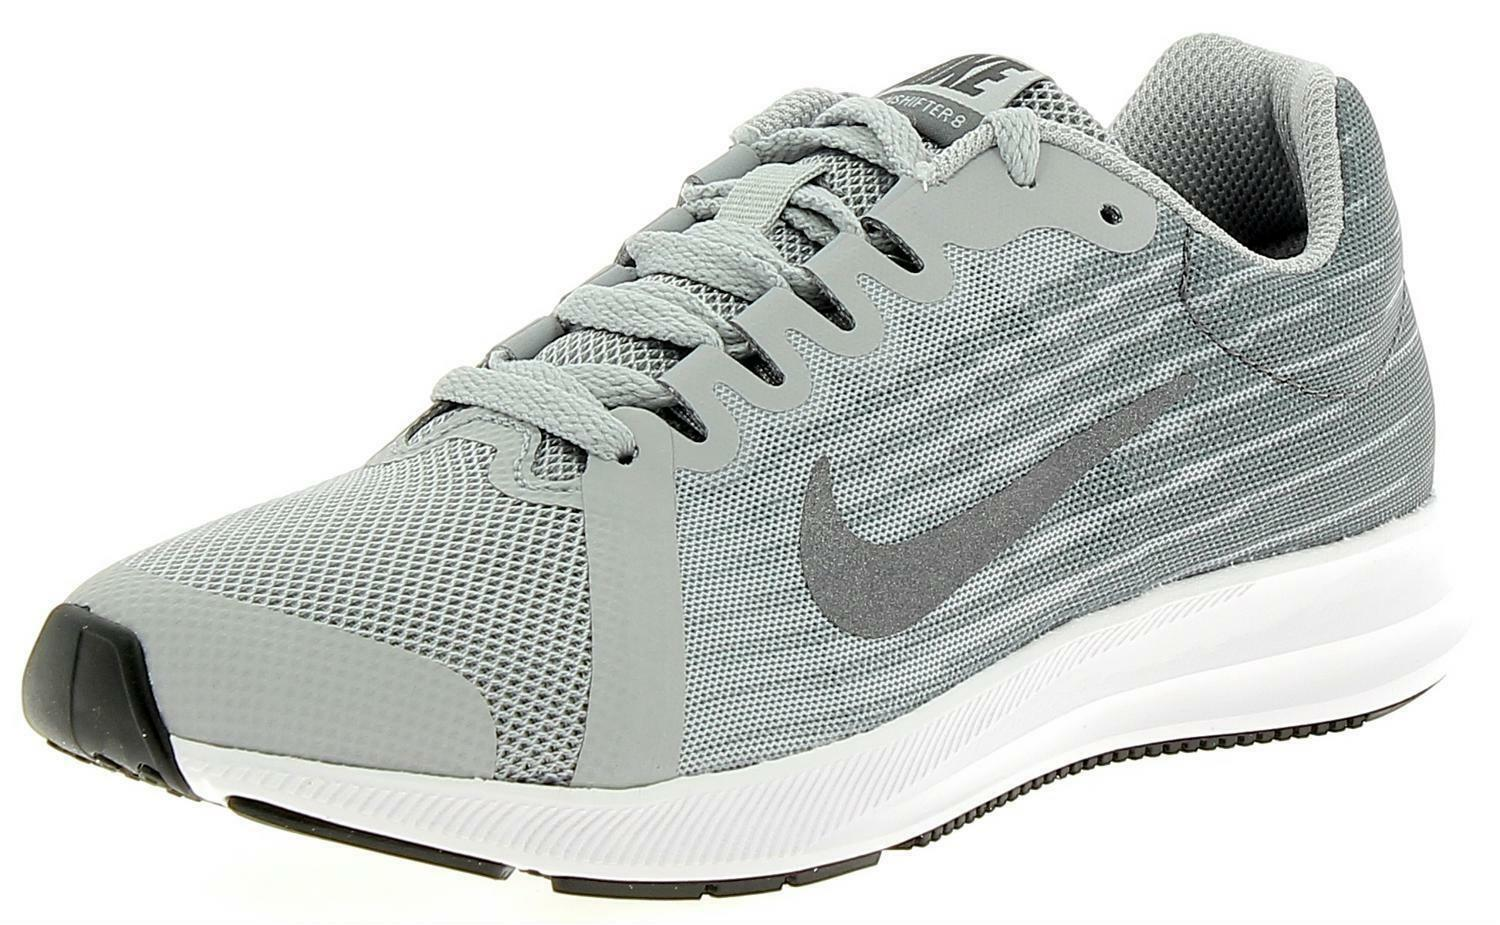 reputable site 9a63c 9a372 Nike Downshifter 8 Gs Kids Sports Shoes Grey